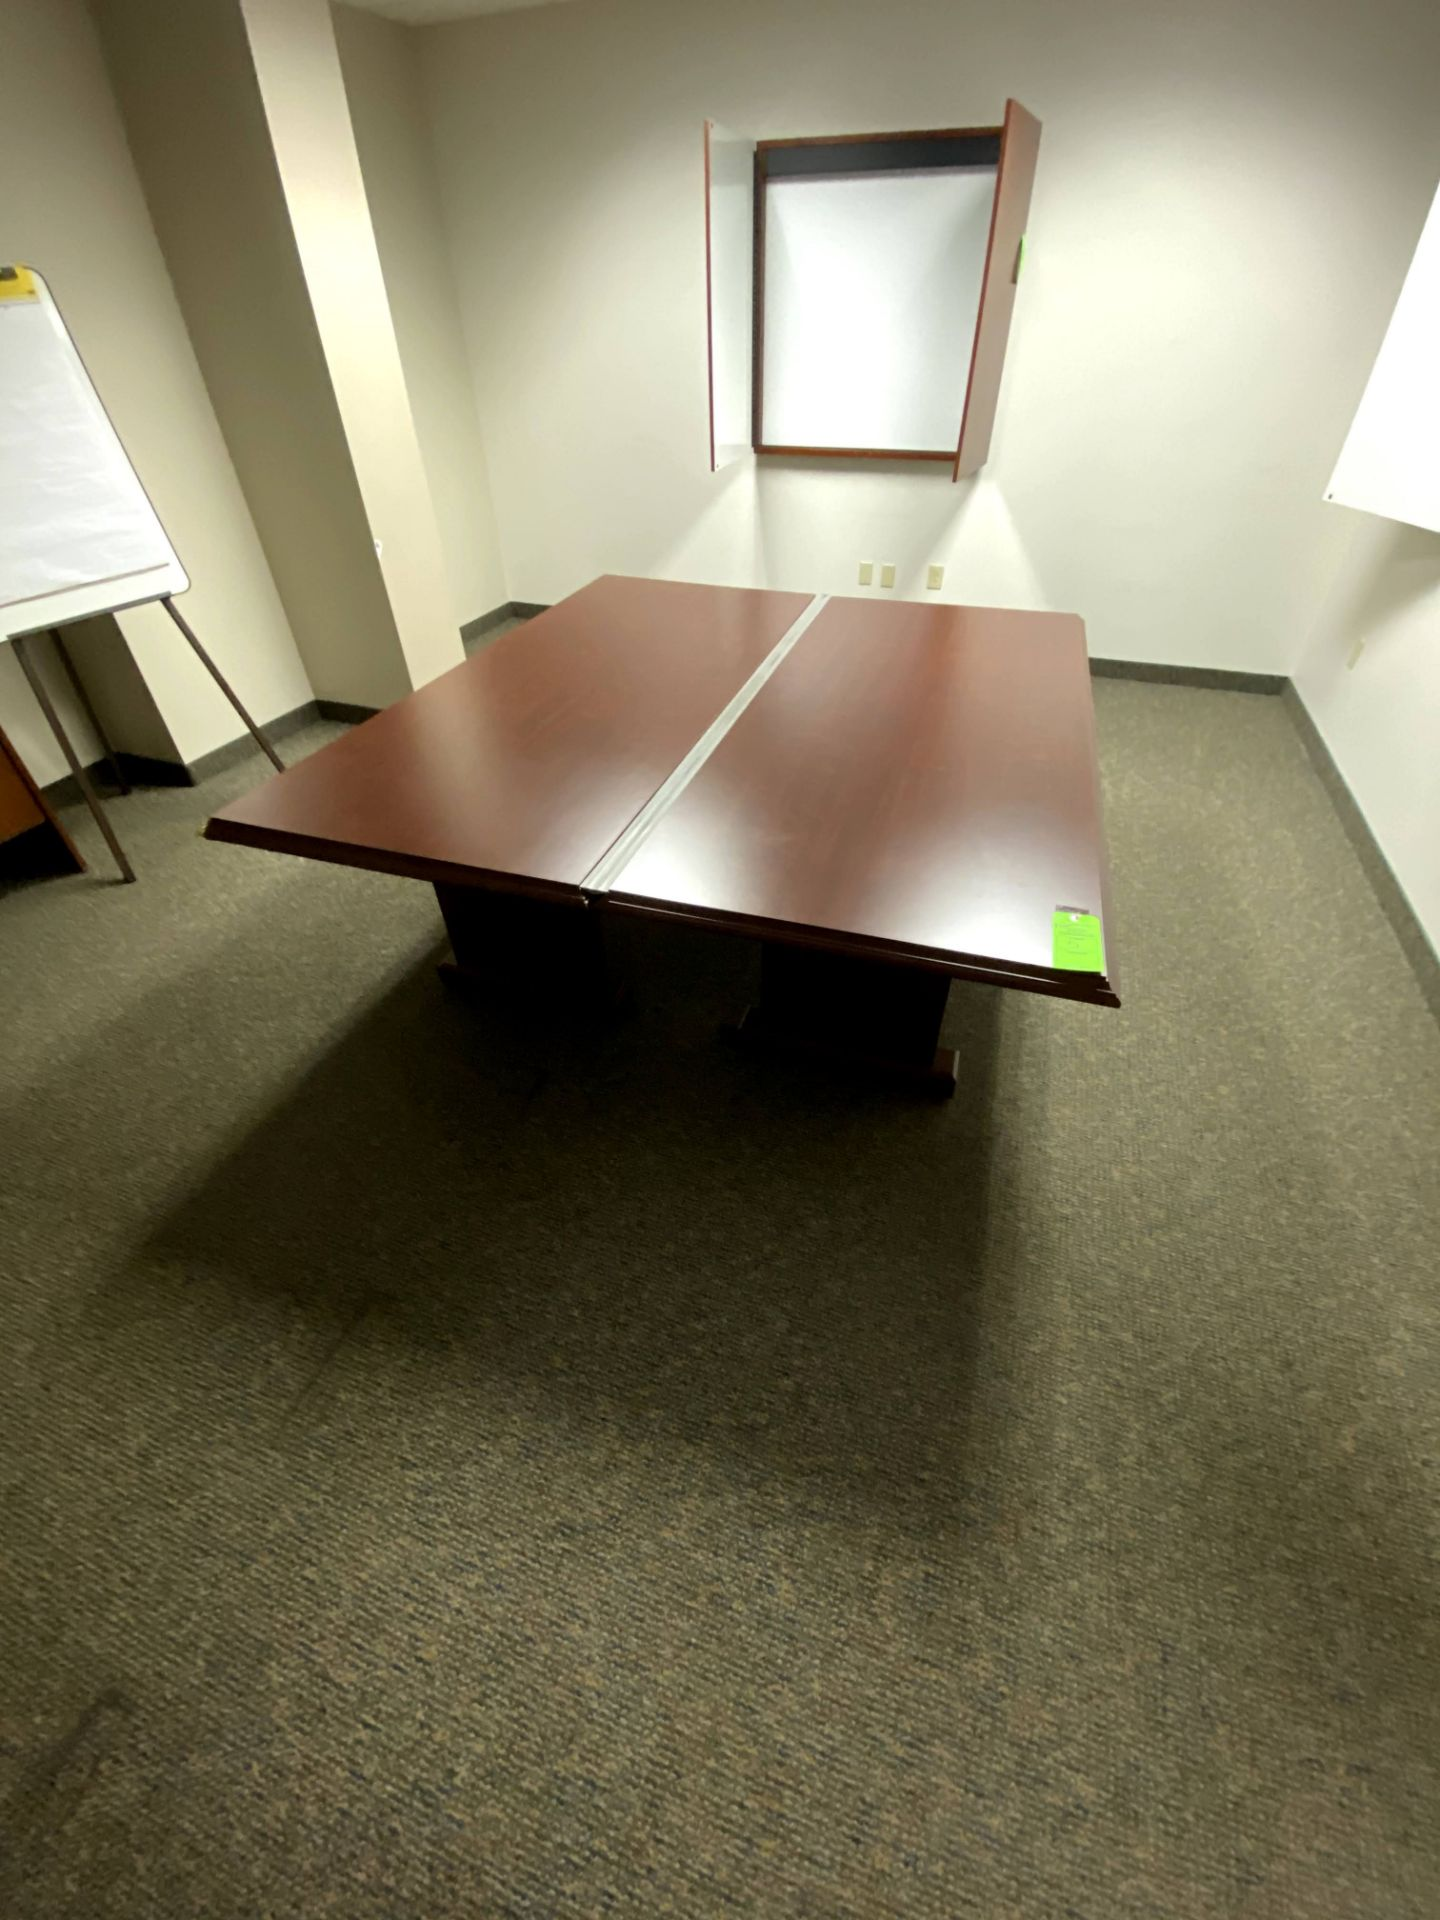 (2) 7' x 3' ARRANGEABLE CHERRY WOOD EXECUTIVE CONFERENCE TABLE(S) -- (7625 OMNITECH PLACE VICTOR NEW